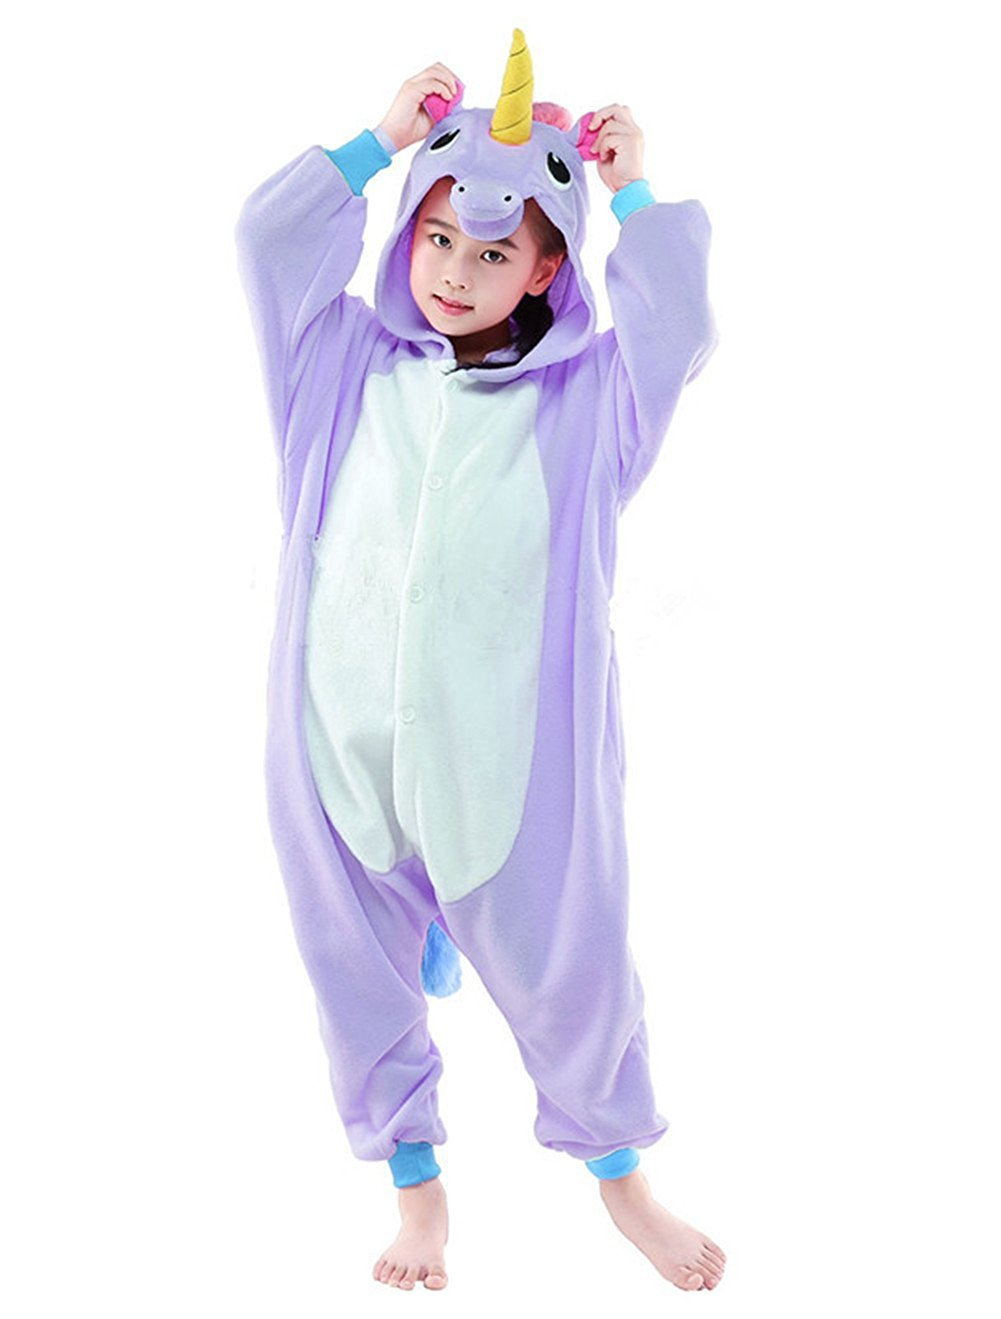 Kids Unicorn Onesies Kigurumi Animal Costume (115#(51-55 inch), Purple Unicorn)